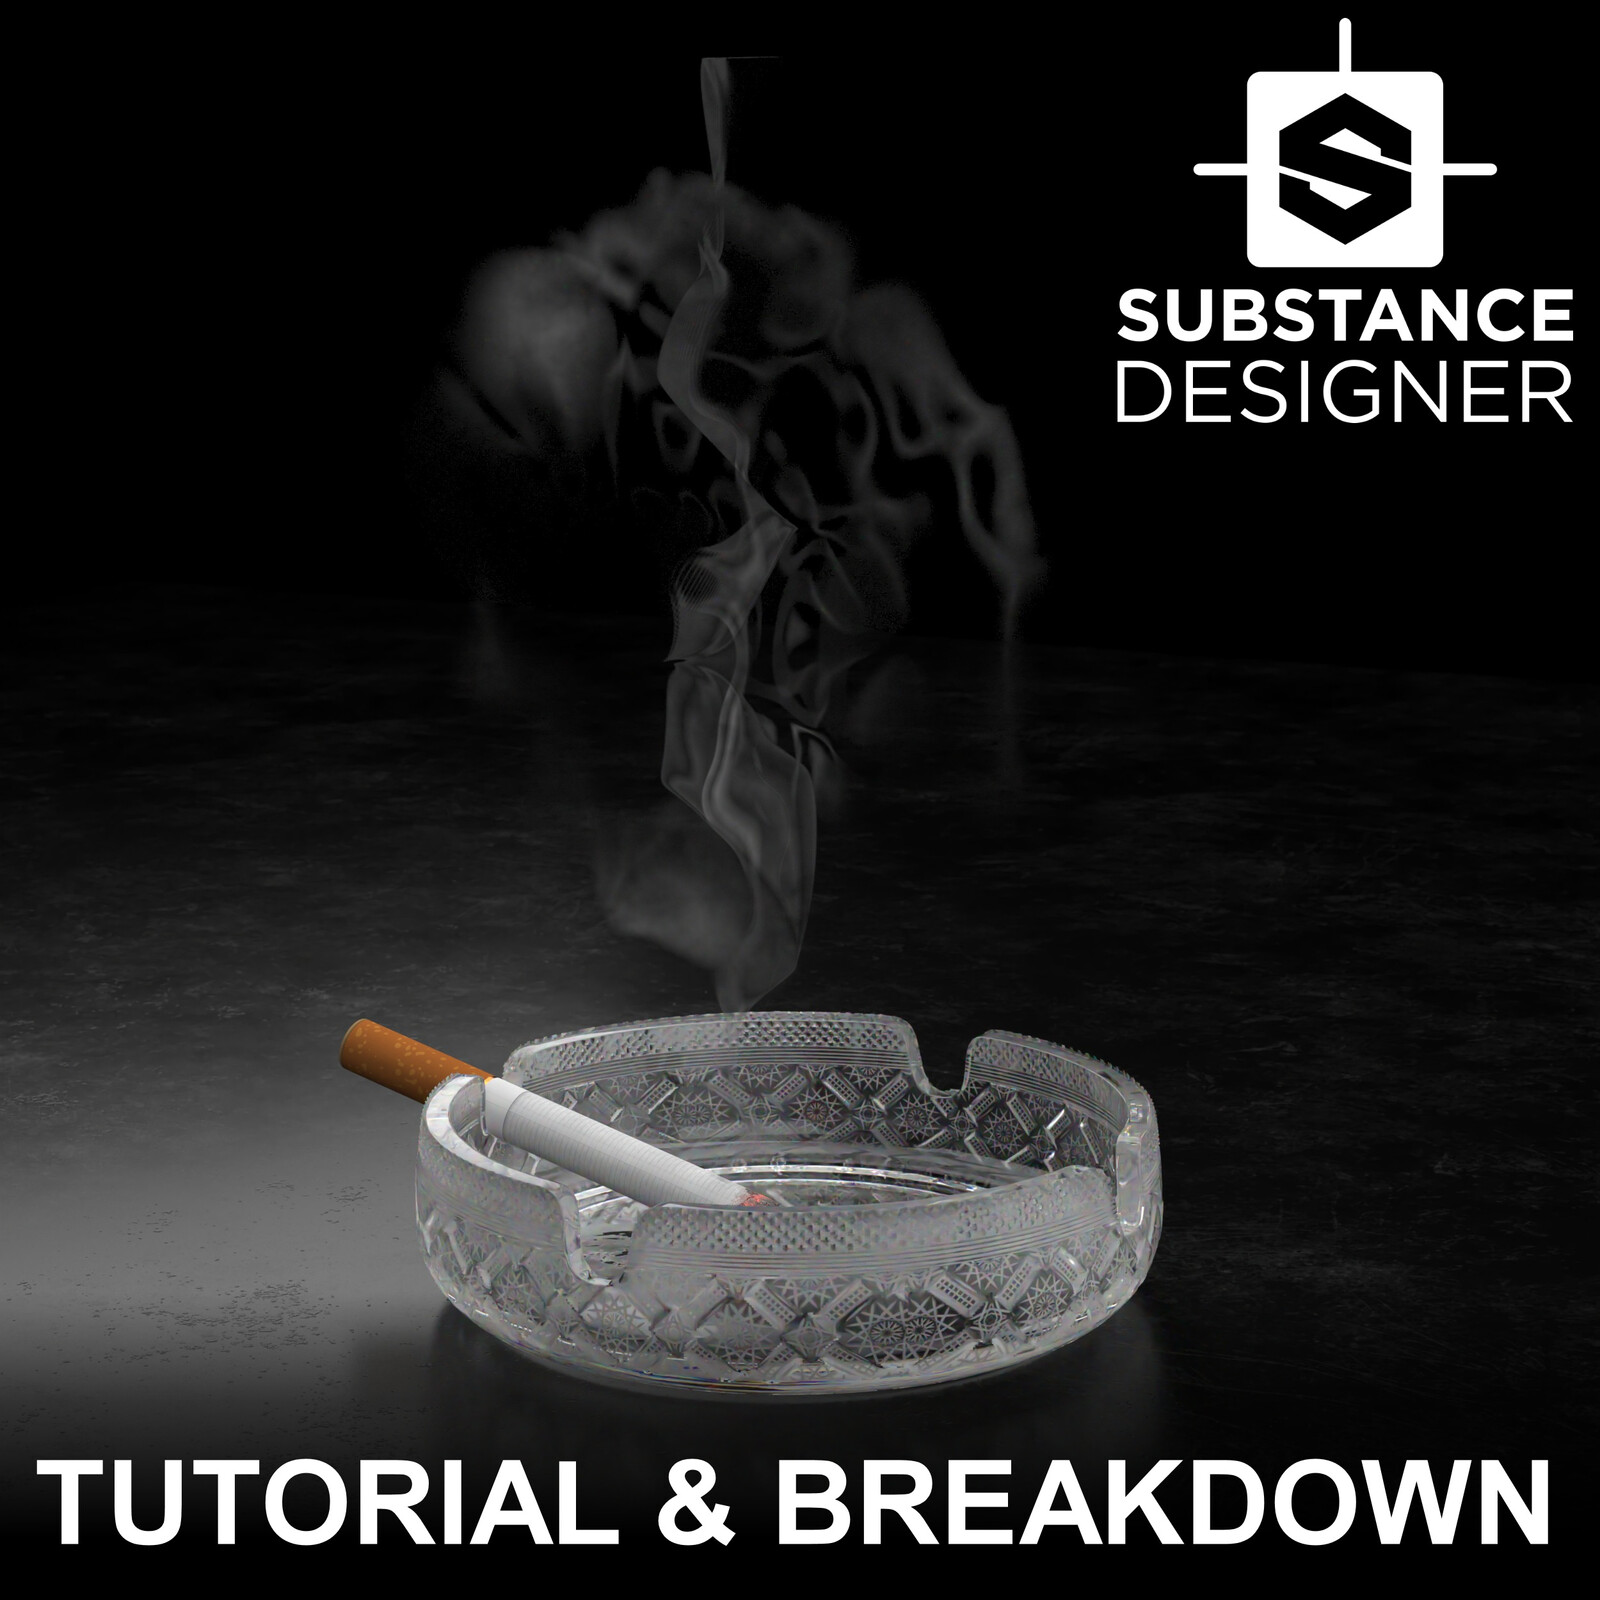 Cigarette & Smoke Substance - Tutorial and Breakdown